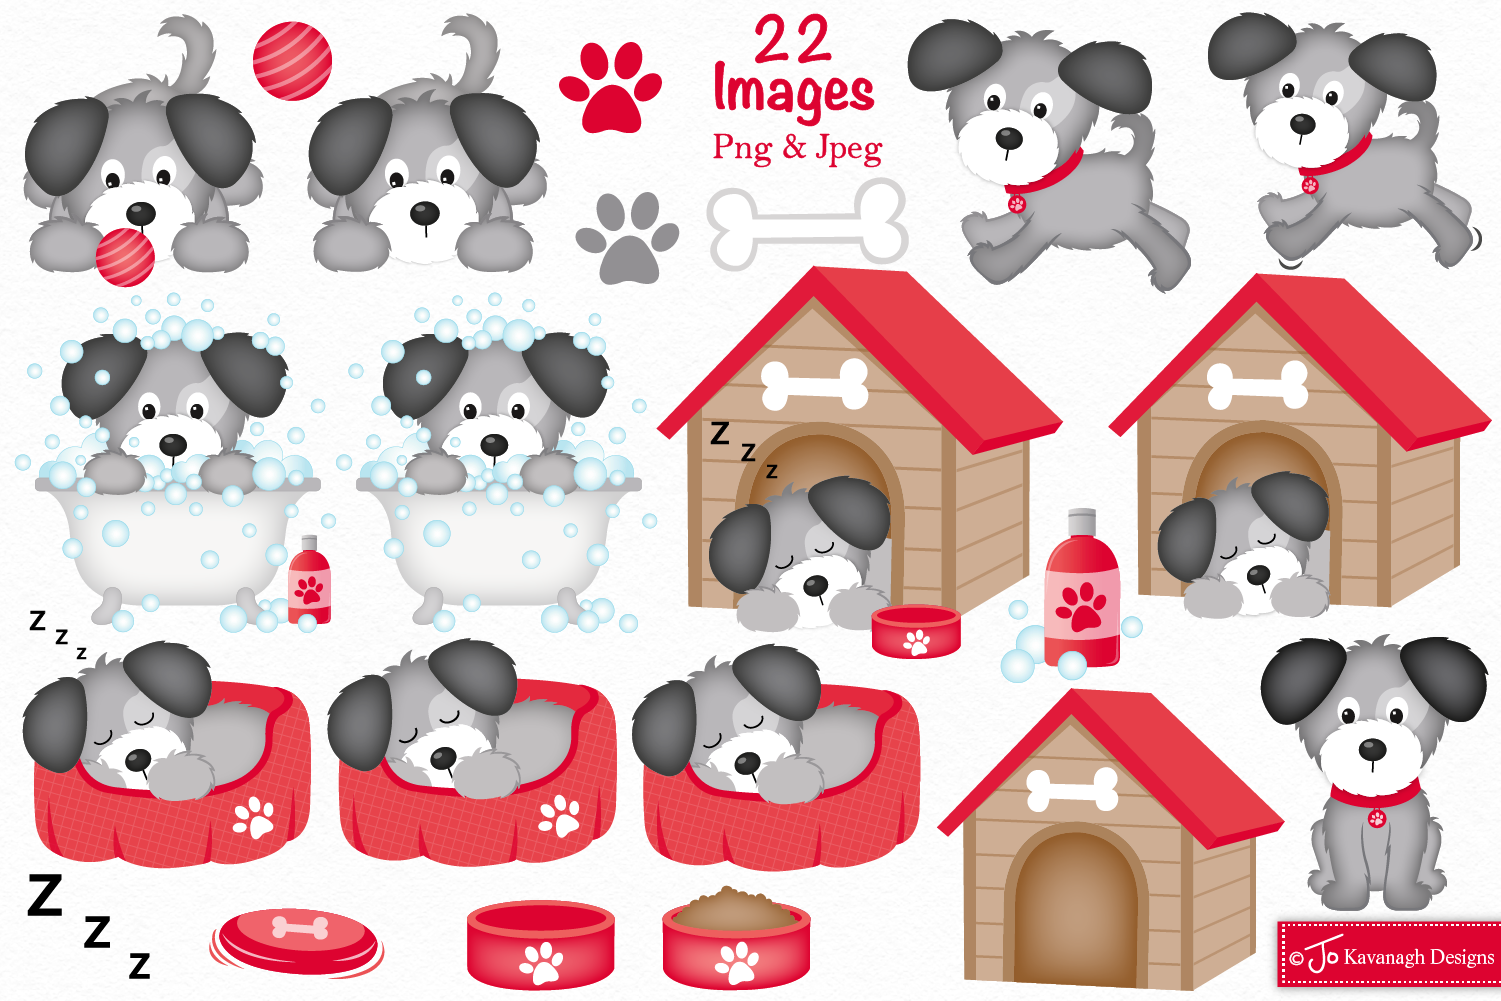 Dog clipart, Dogs -C37 example image 2